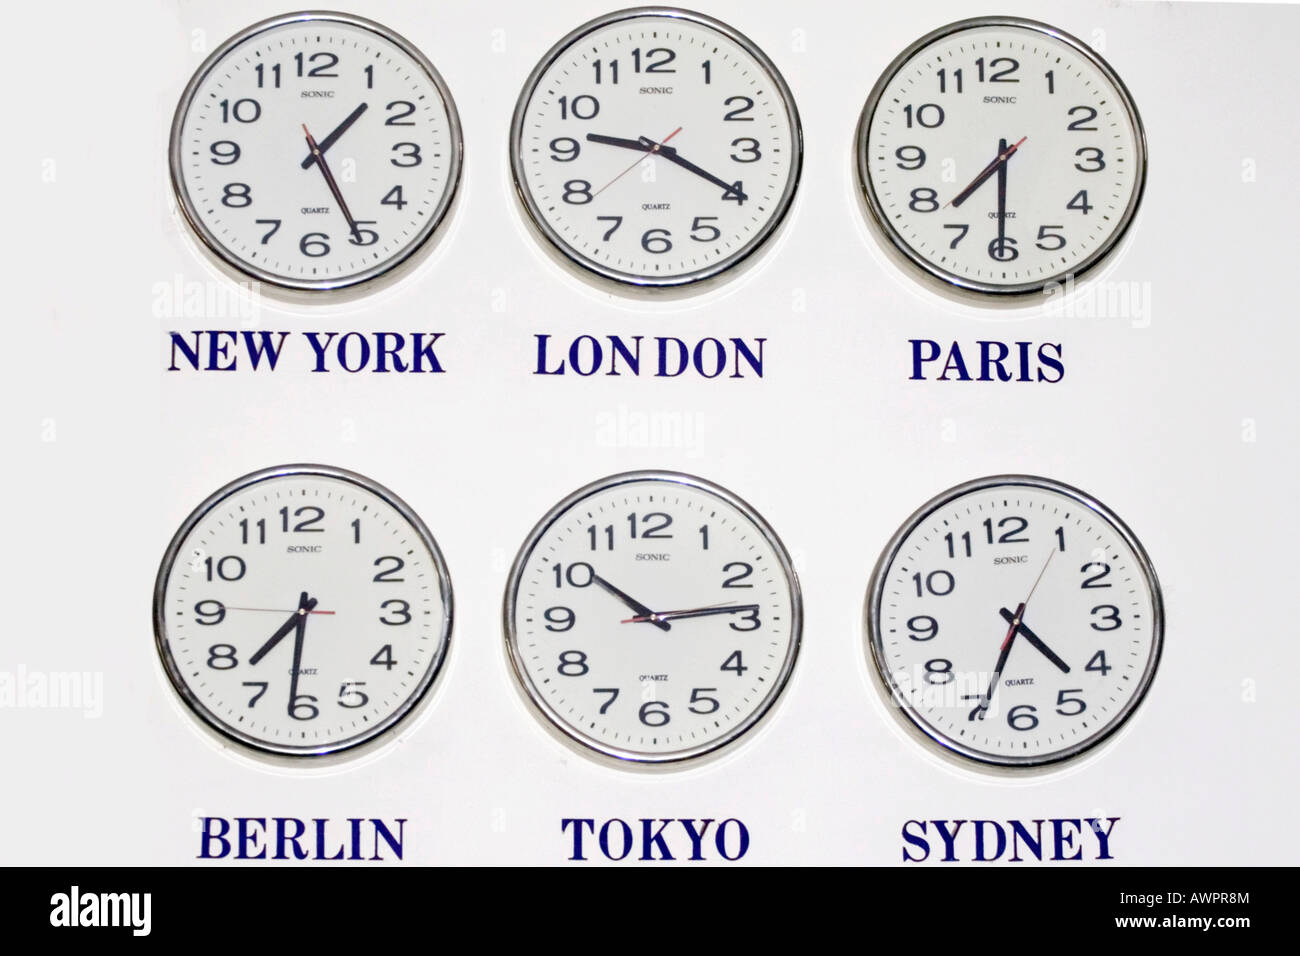 Time in different cities of the world - Stock Image